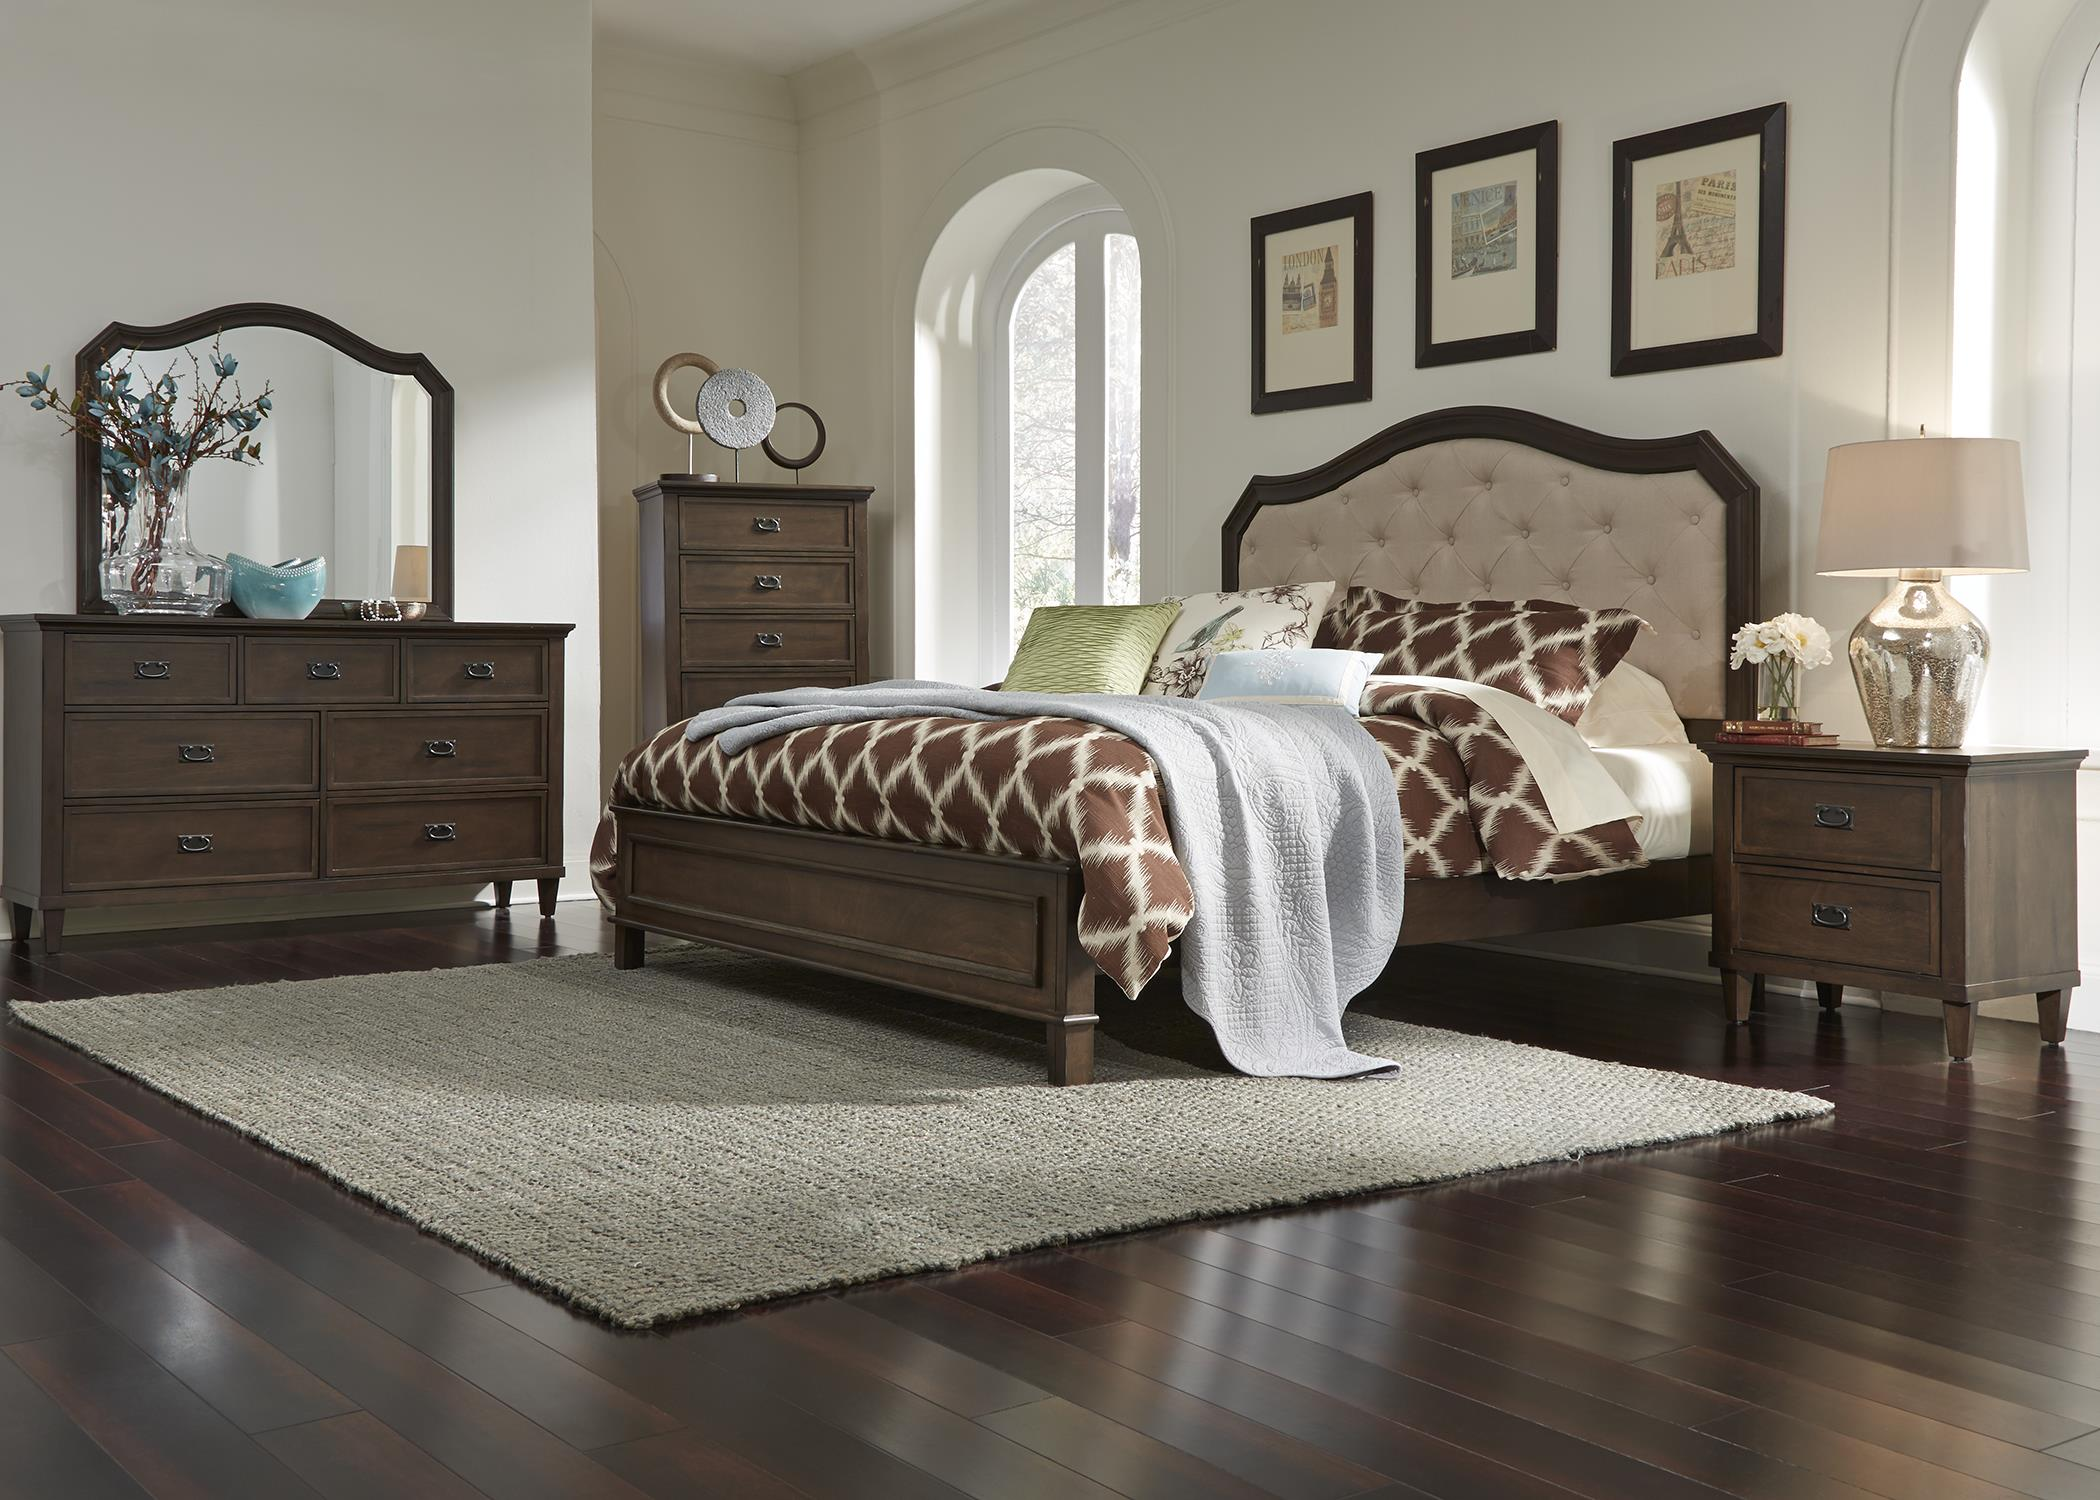 Liberty Furniture Berkley Heights King Bedroom Group - Item Number: 102 K Bedroom Group 1